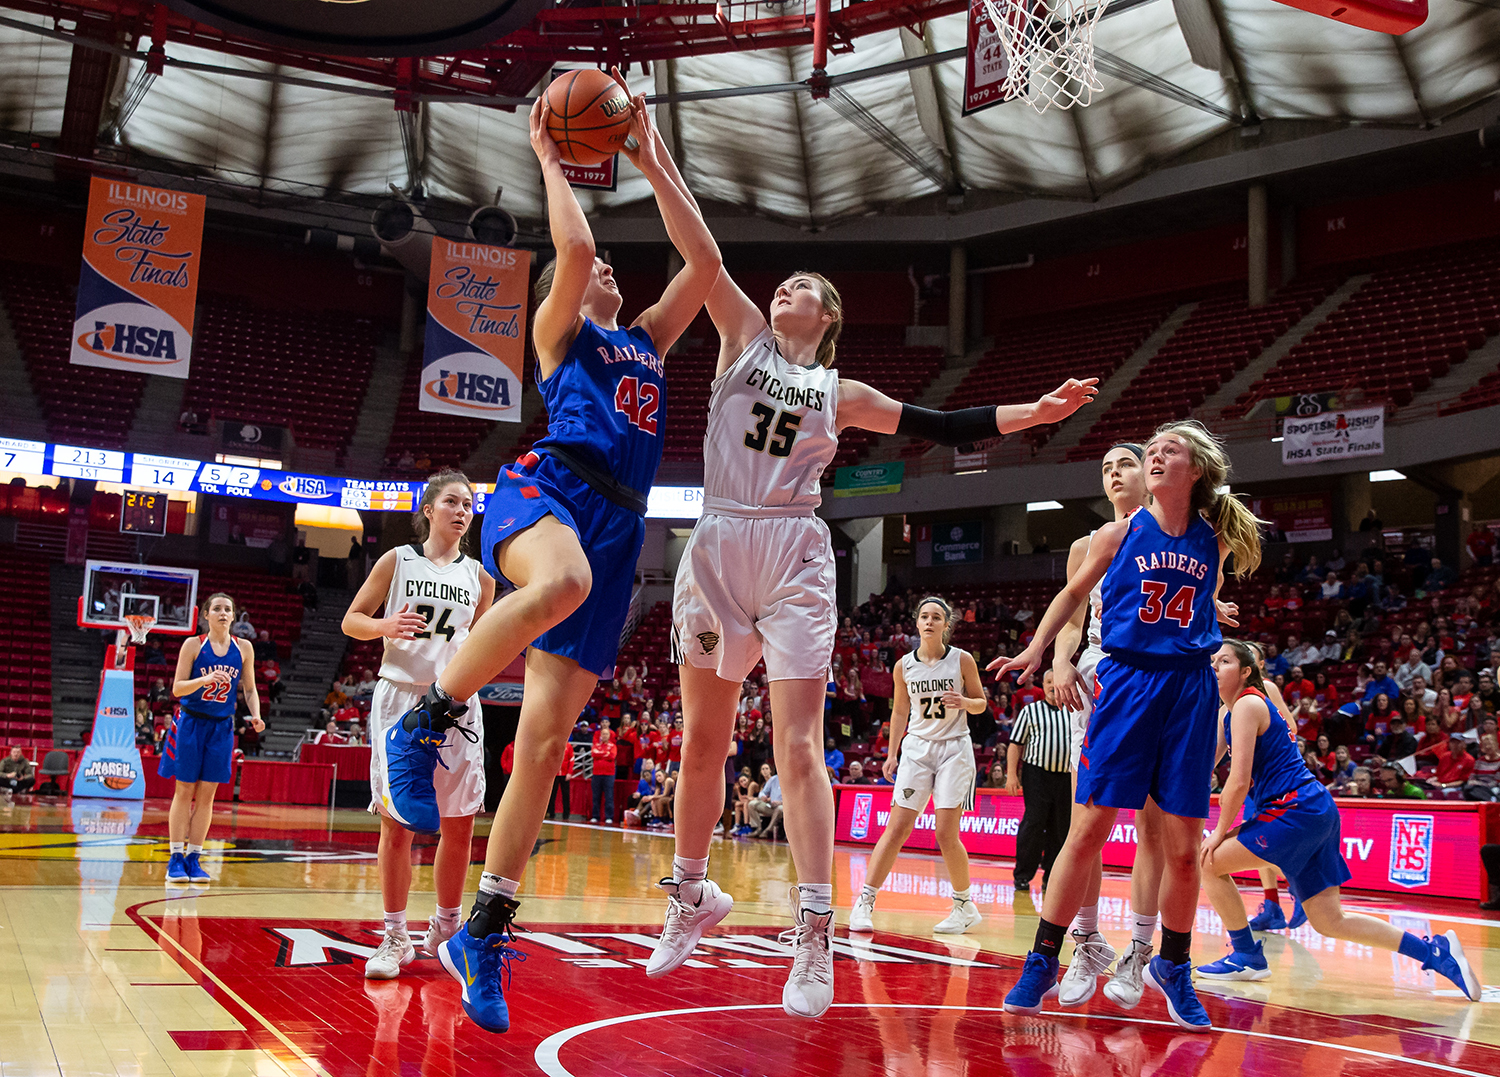 Sacred Heart-Griffin's Victoria Zeigler (35) blocks a shot from Glen Ellyn Glenbard South's Maggie Bair (42) in the first quarter during the IHSA Class 3A State Tournament semifinals at Redbird Arena, Friday, March 1, 2019, in Normal, Ill. [Justin L. Fowler/The State Journal-Register]